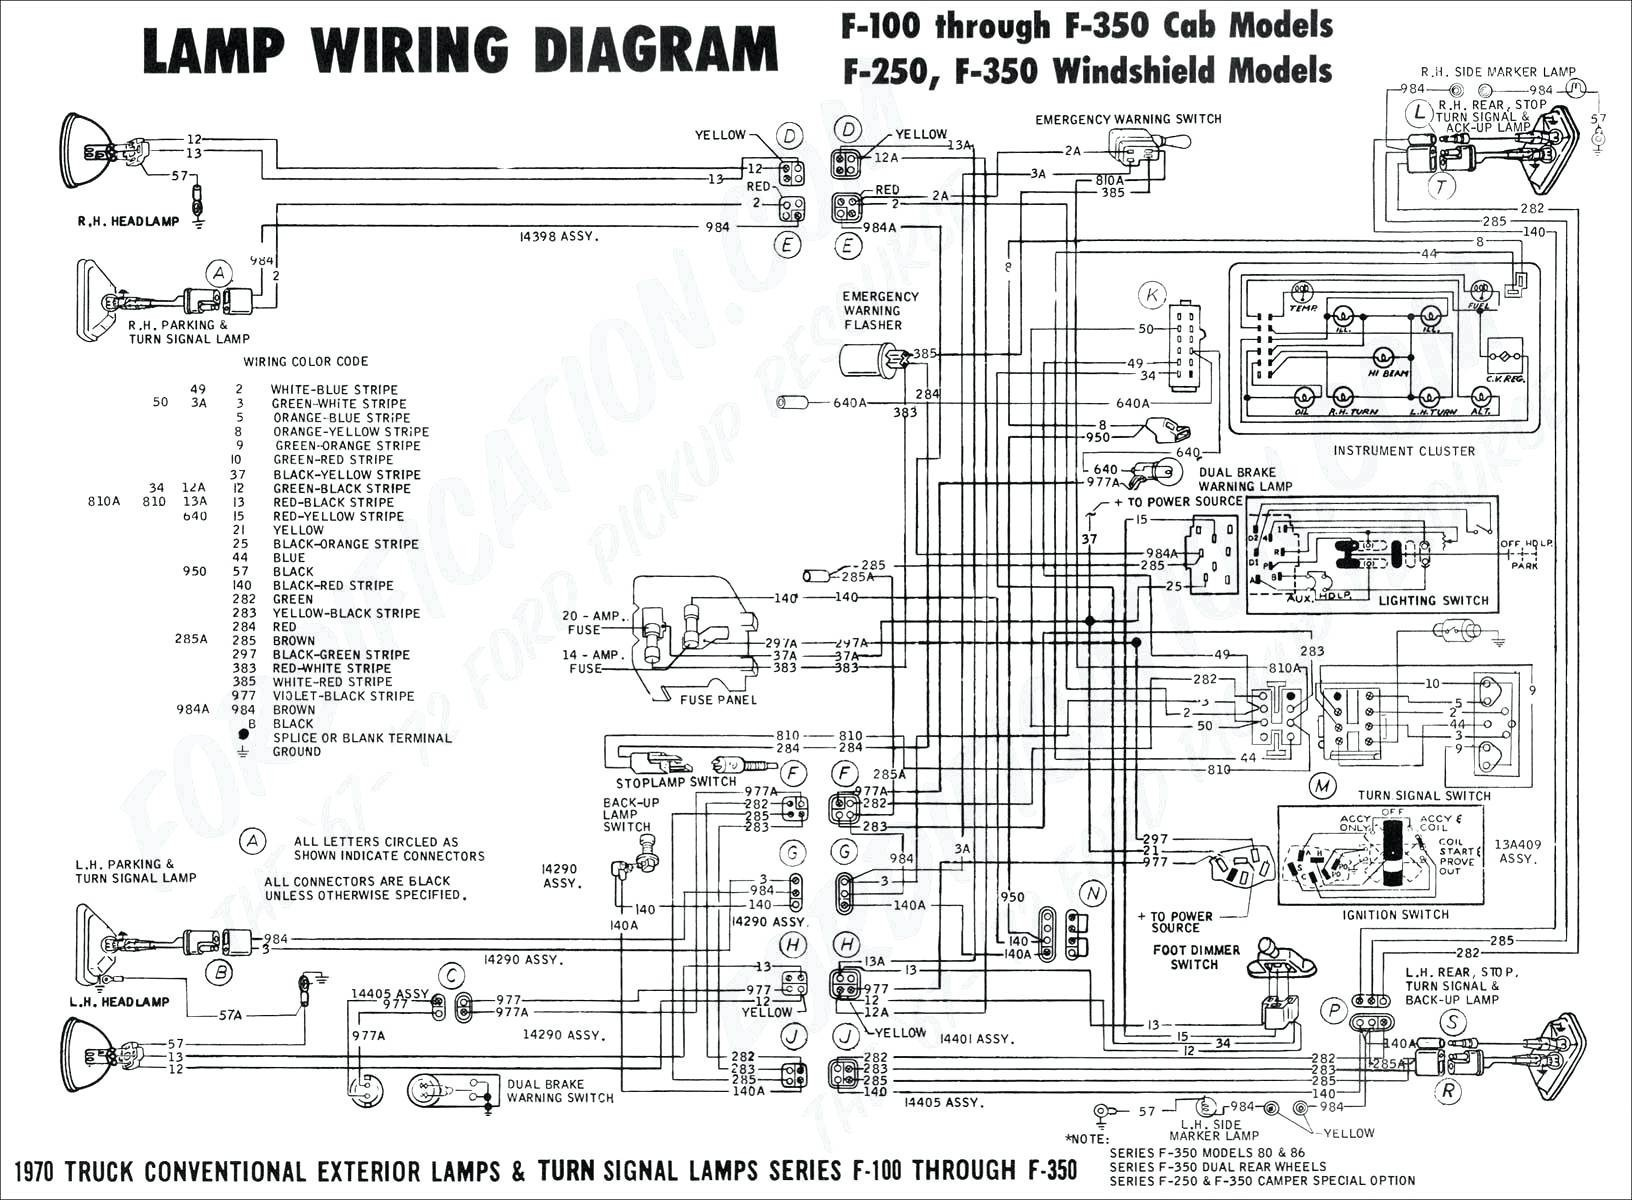 Car Air Conditioner Diagram Parts Wiring Diagram In Car Wiring Diagram Inside Of Car Air Conditioner Diagram Parts